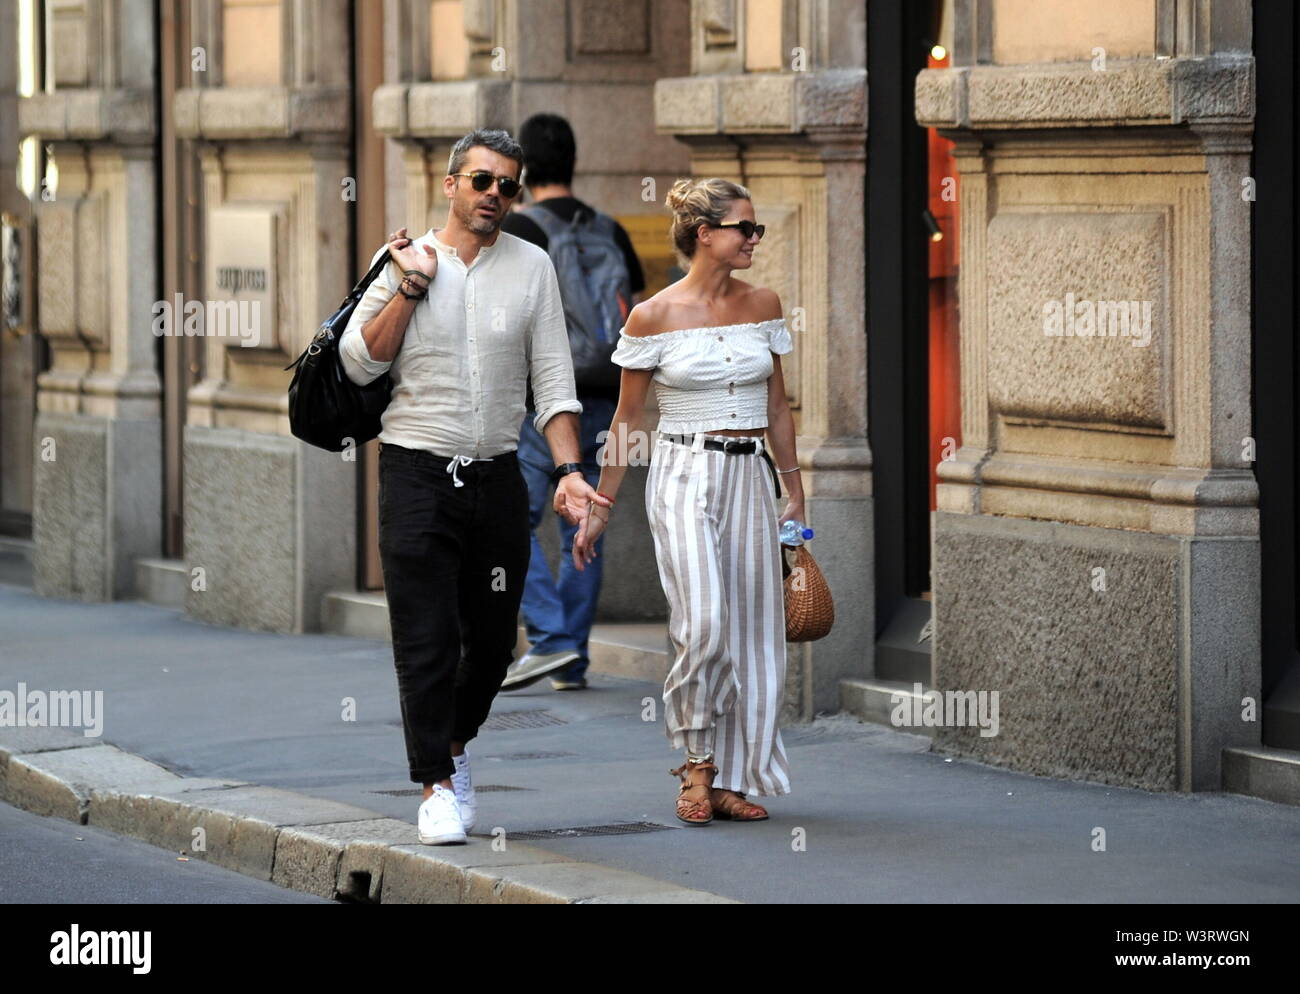 Milan Luca Argentero And Cristina Marino In The Center Luca Argentero And His Girlfriend Cristina Marino Caught A Glimpse Of The Streets Of Downtown After A Walk Along The Quadrangle They Enter